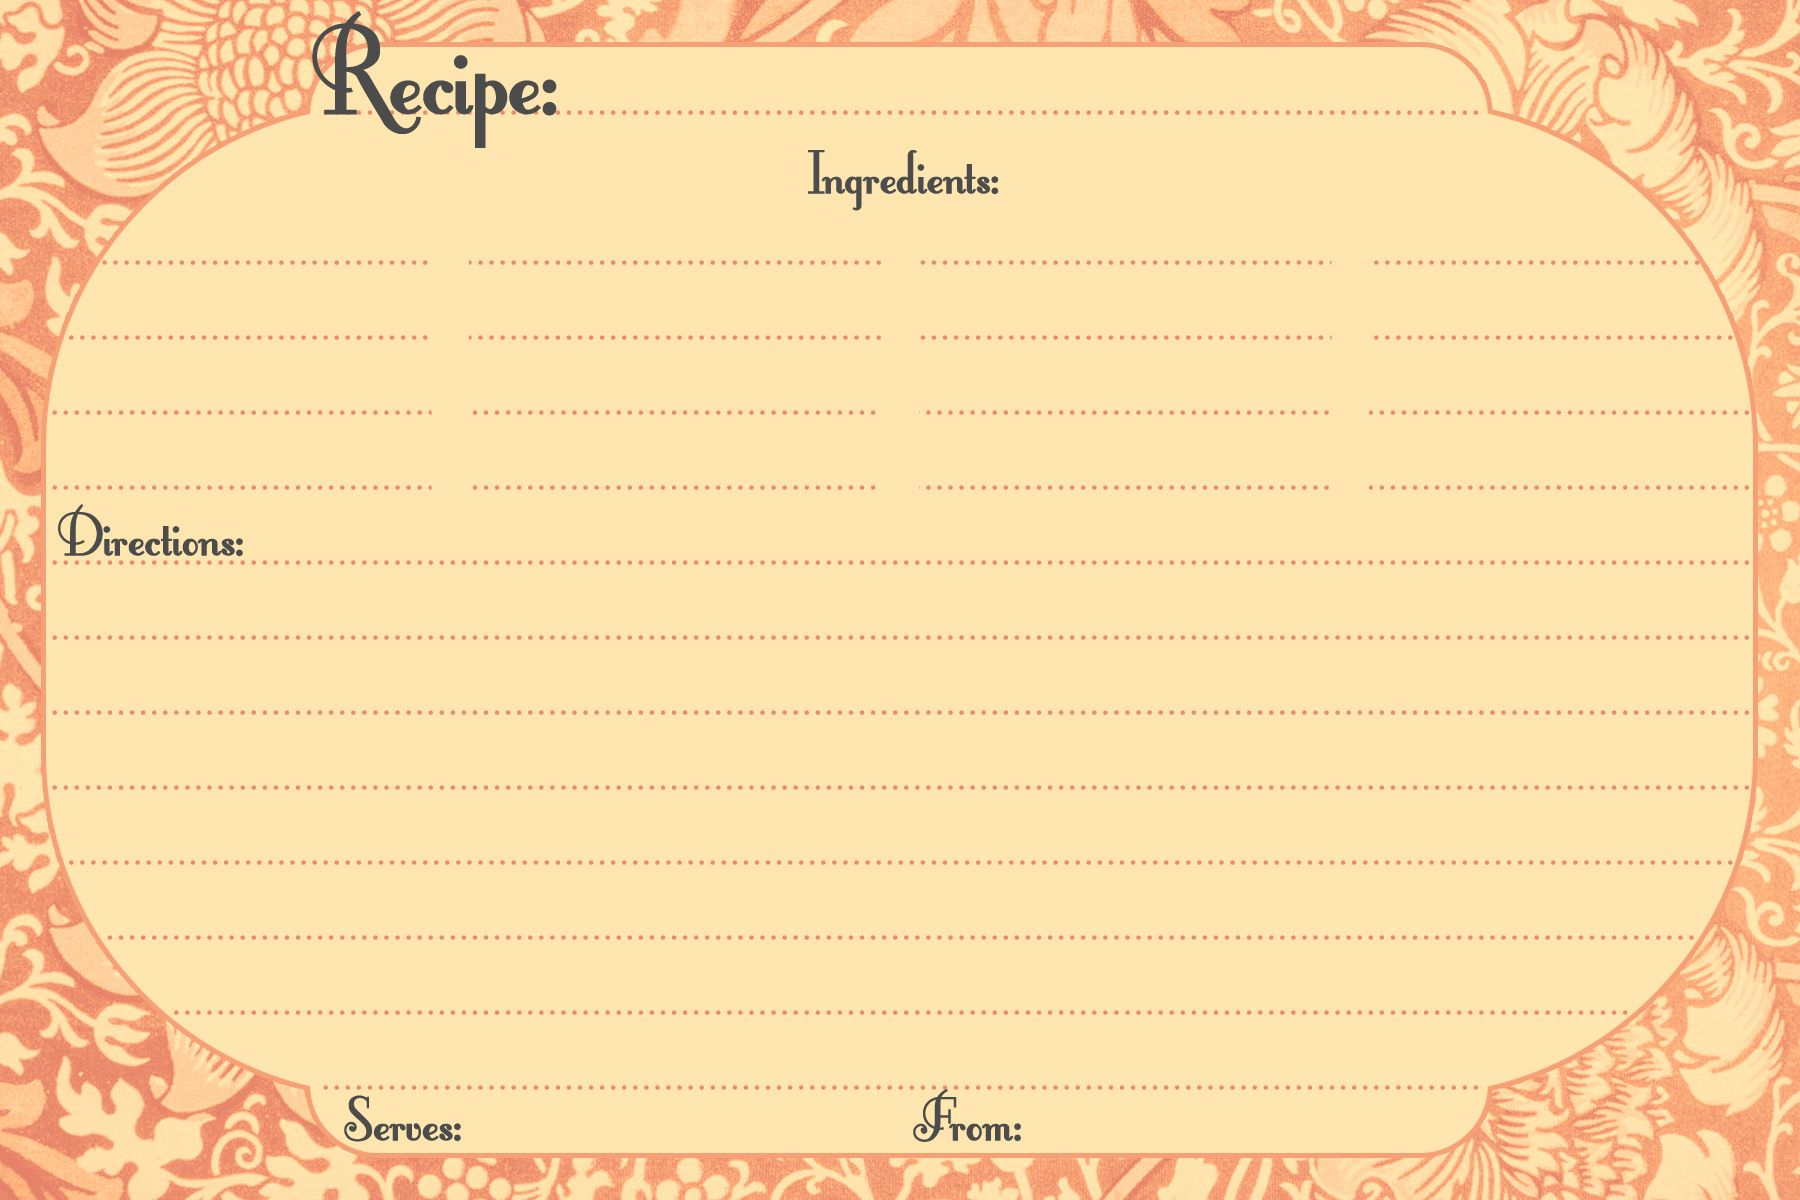 Free Printable Blank Recipe Cards 4X6 Download Them And Try To - Free Printable Photo Cards 4X6